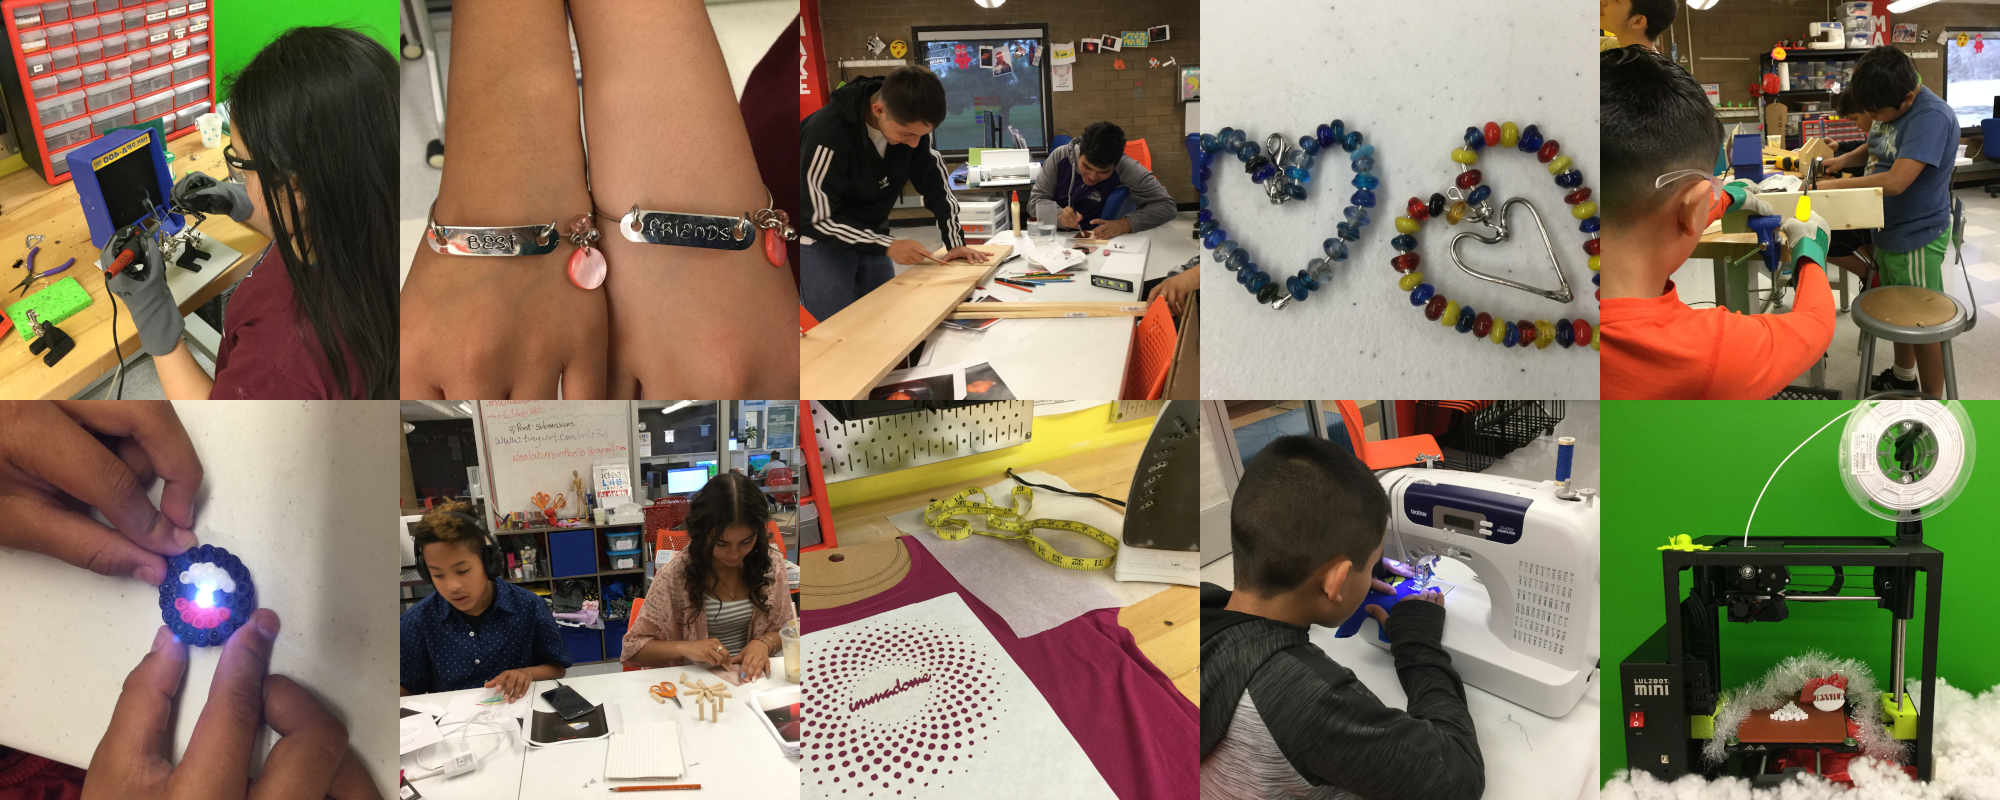 Examples of people working and making in the Montbello ideaLAB.